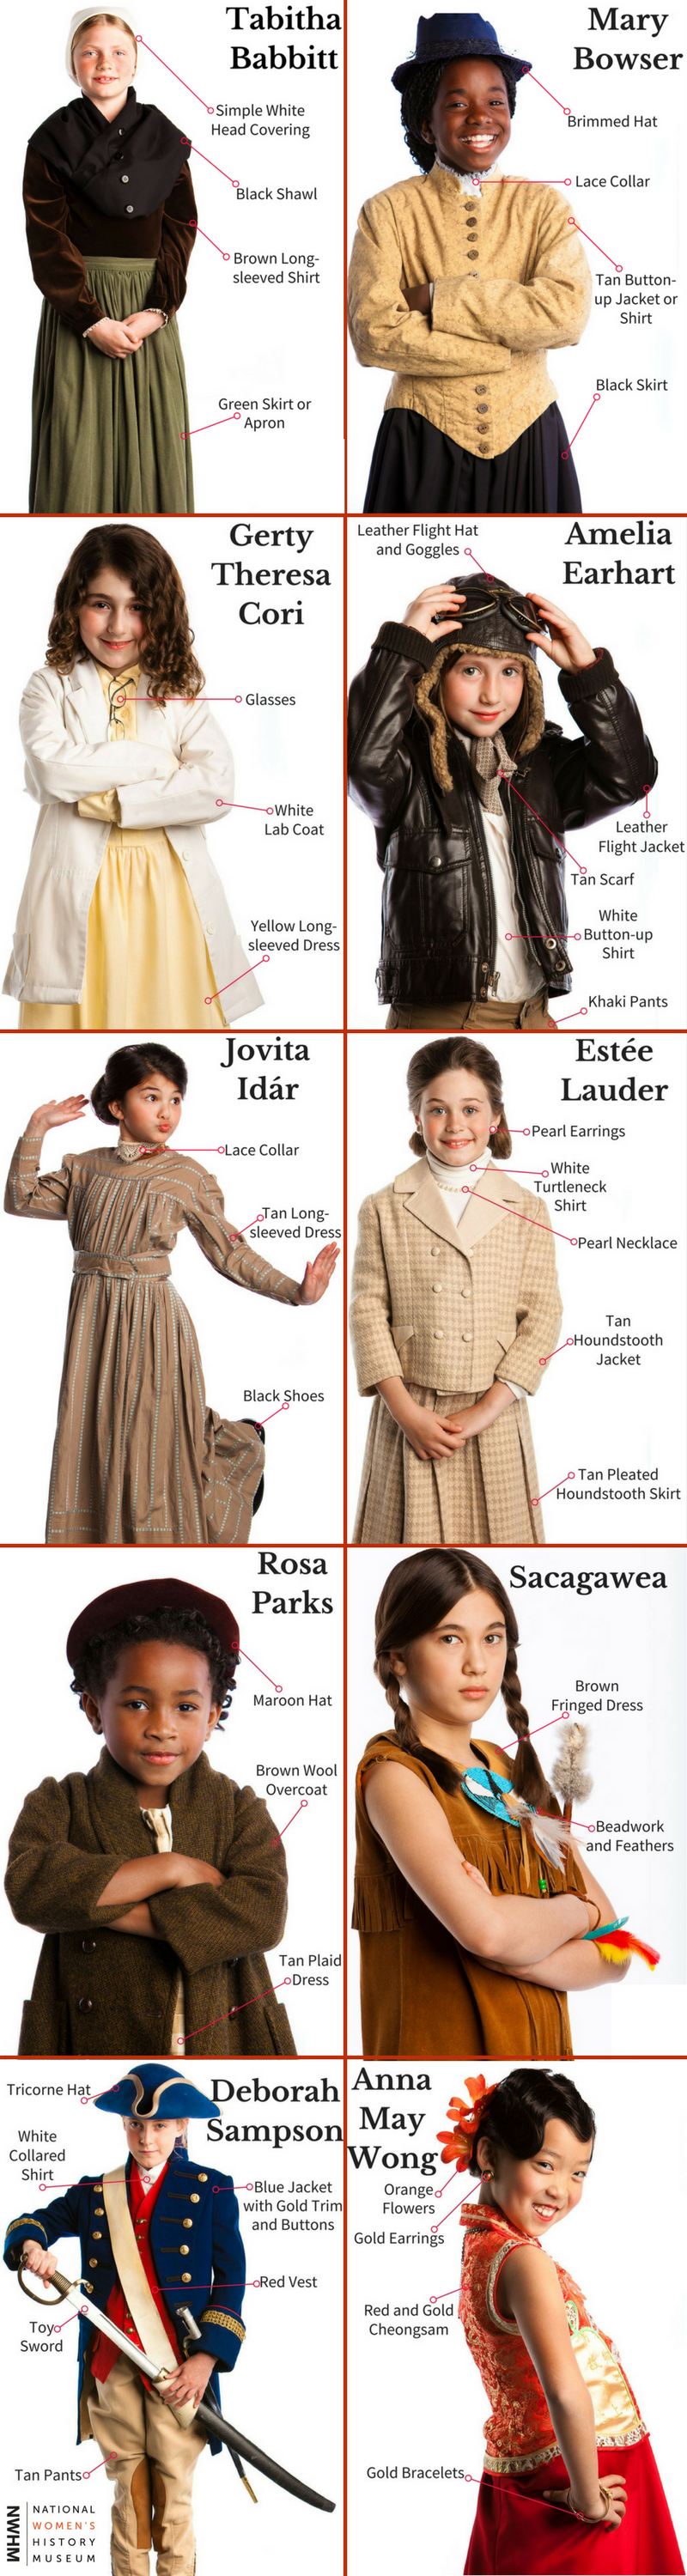 Looking for a womenu0027s history Halloween costume? Watch this video to learn about 10 notable women in history then scroll down to find out how to create your ...  sc 1 st  National Womenu0027s History Museum & Womenu0027s History Costume Ideas | National Womenu0027s History Museum